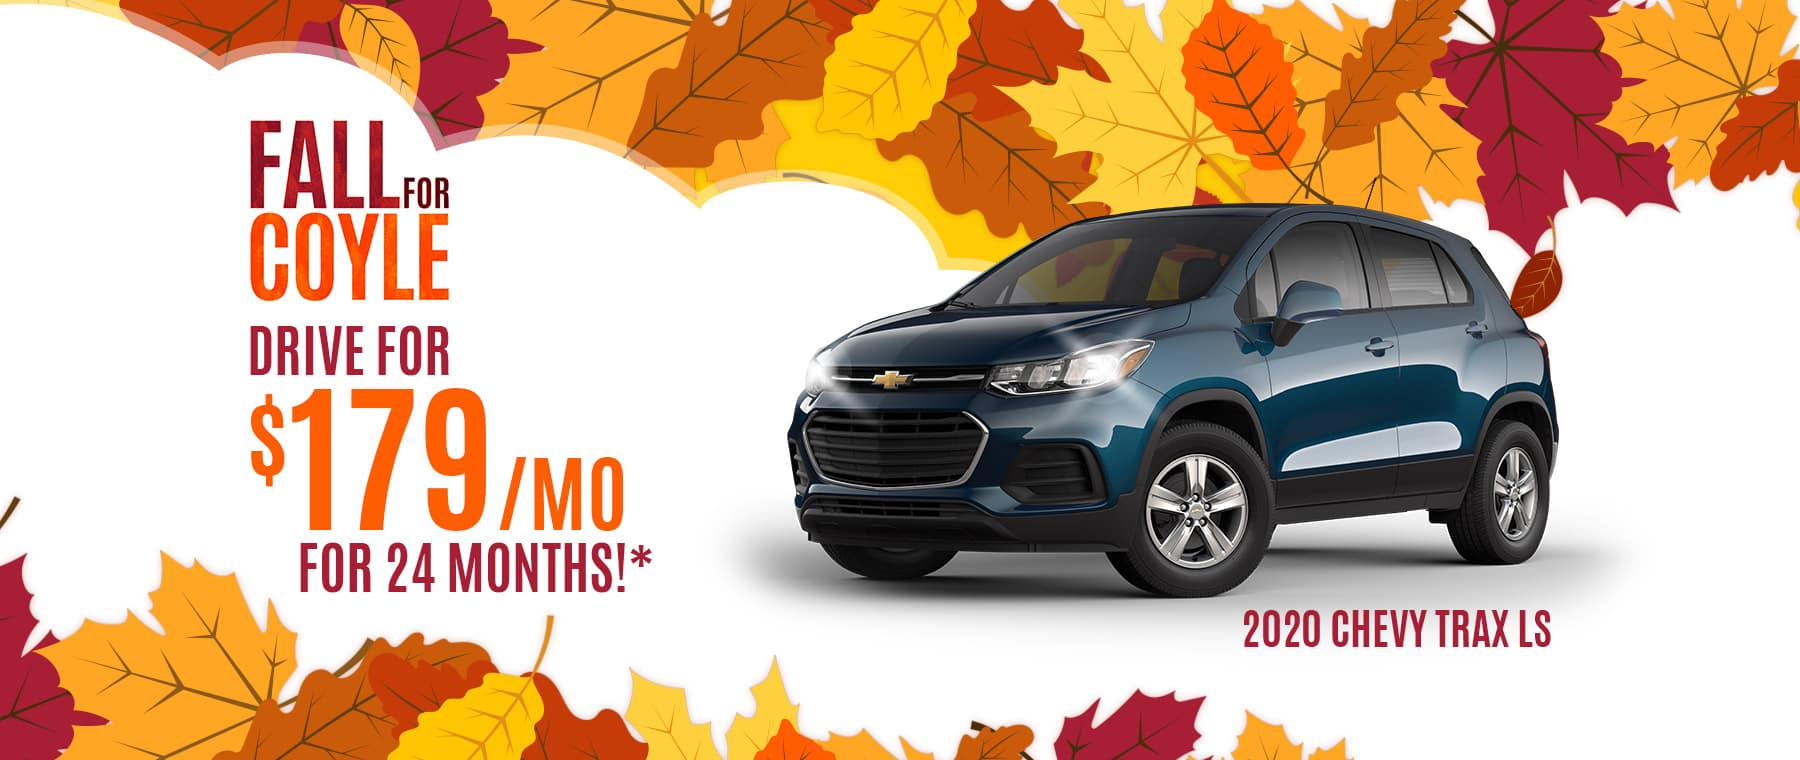 Lease Special on New Chevrolet Trax near Georgetown, Indiana